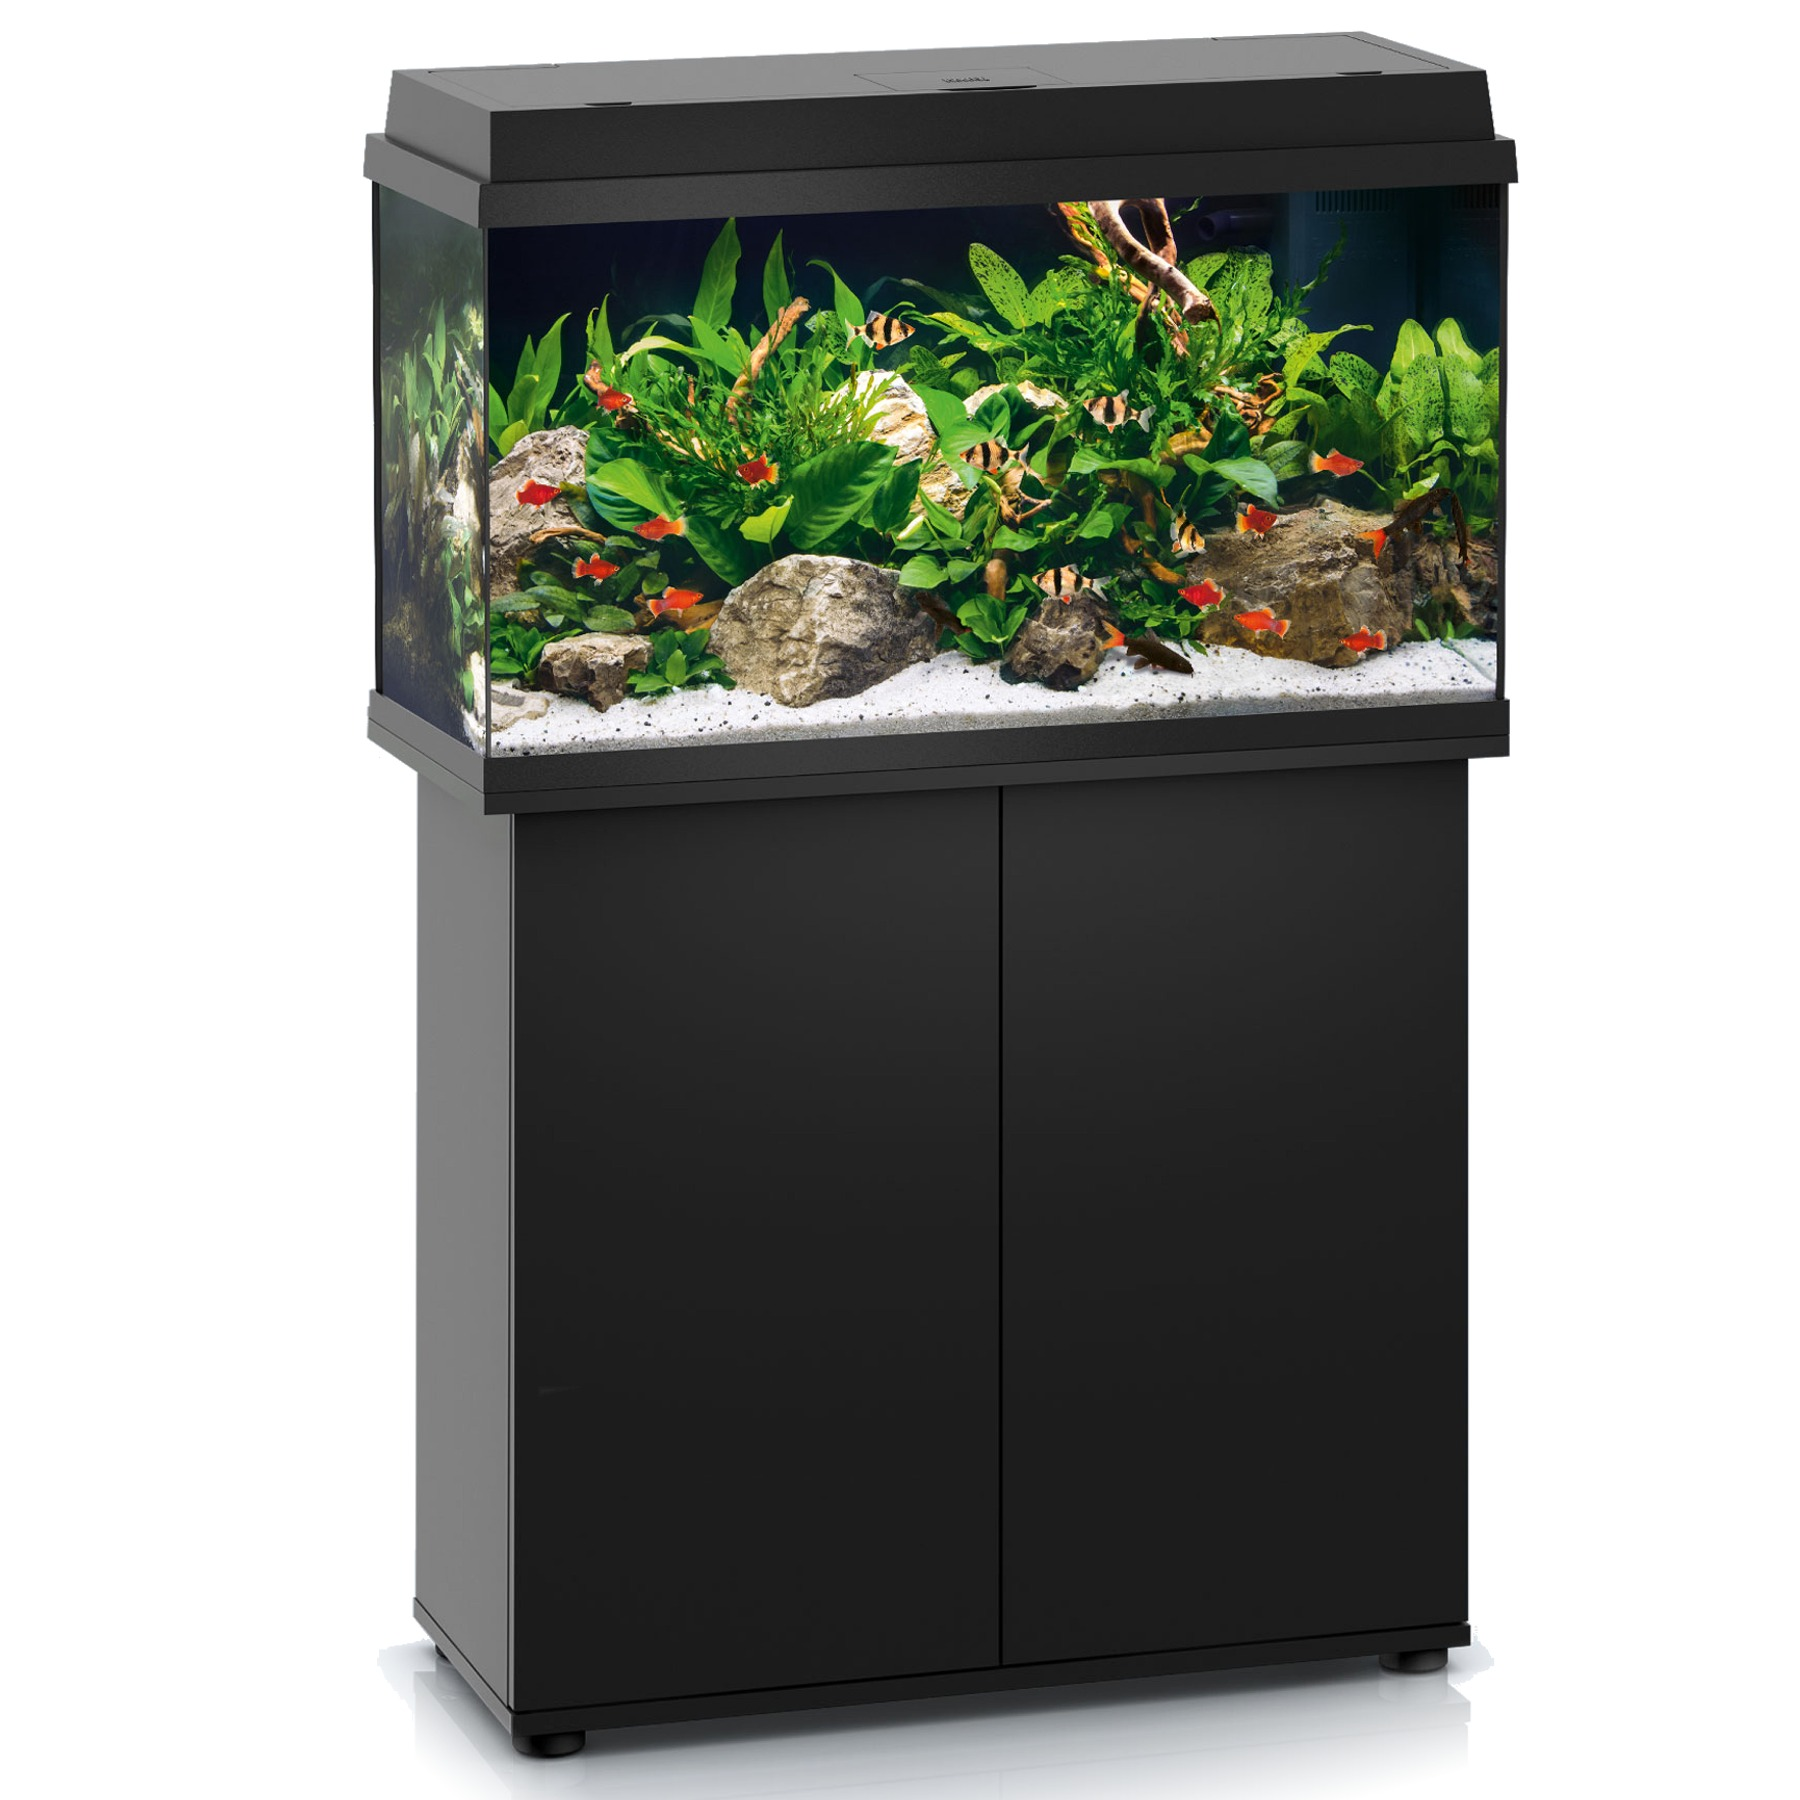 Aquarium JUWEL Primo 110 LED 81 x 36 x 45 cm 110L disponible avec ou sans meuble